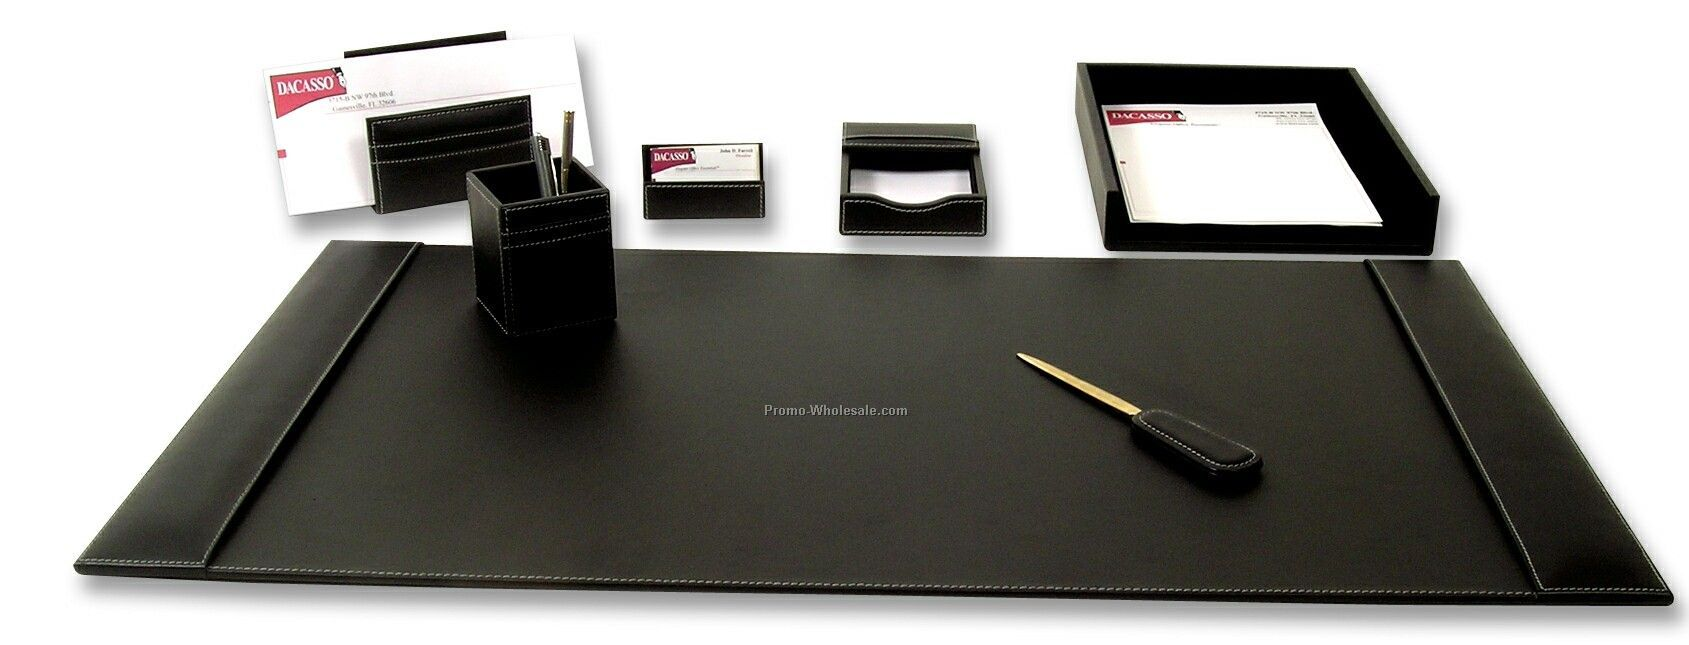 Desk Sets,china Wholesale Desk Sets